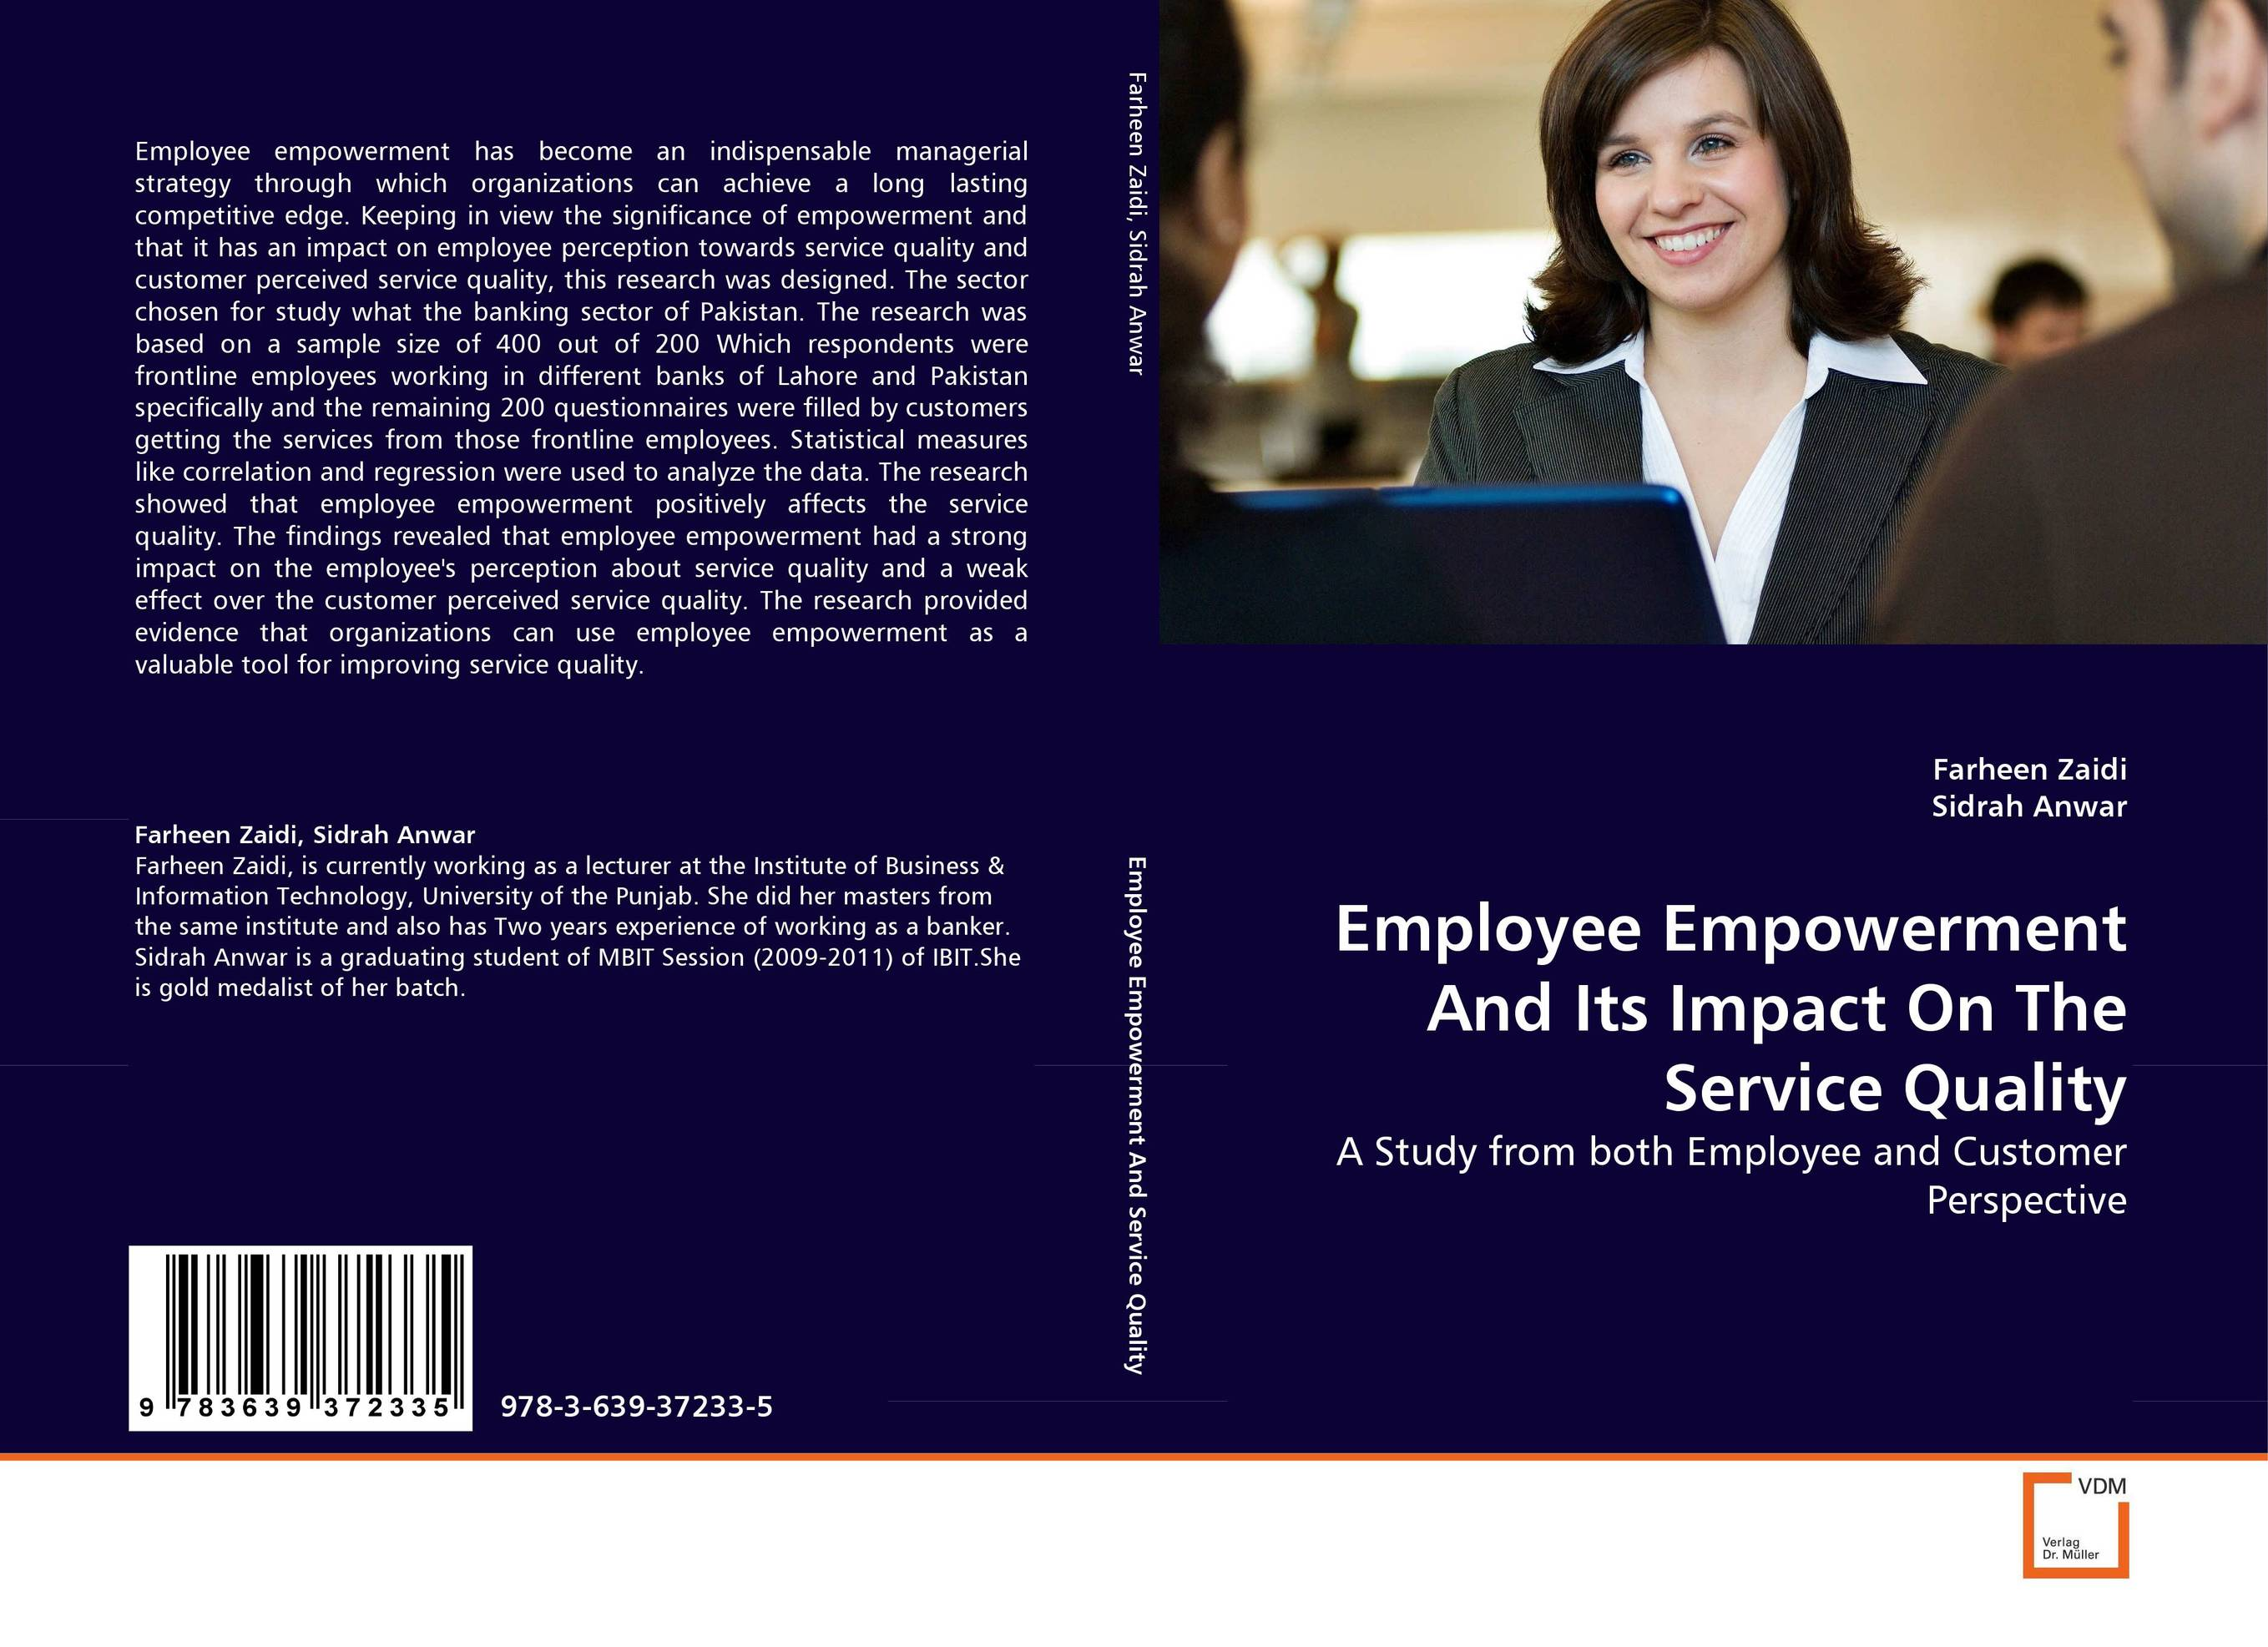 Employee Empowerment And Its Impact On The Service Quality